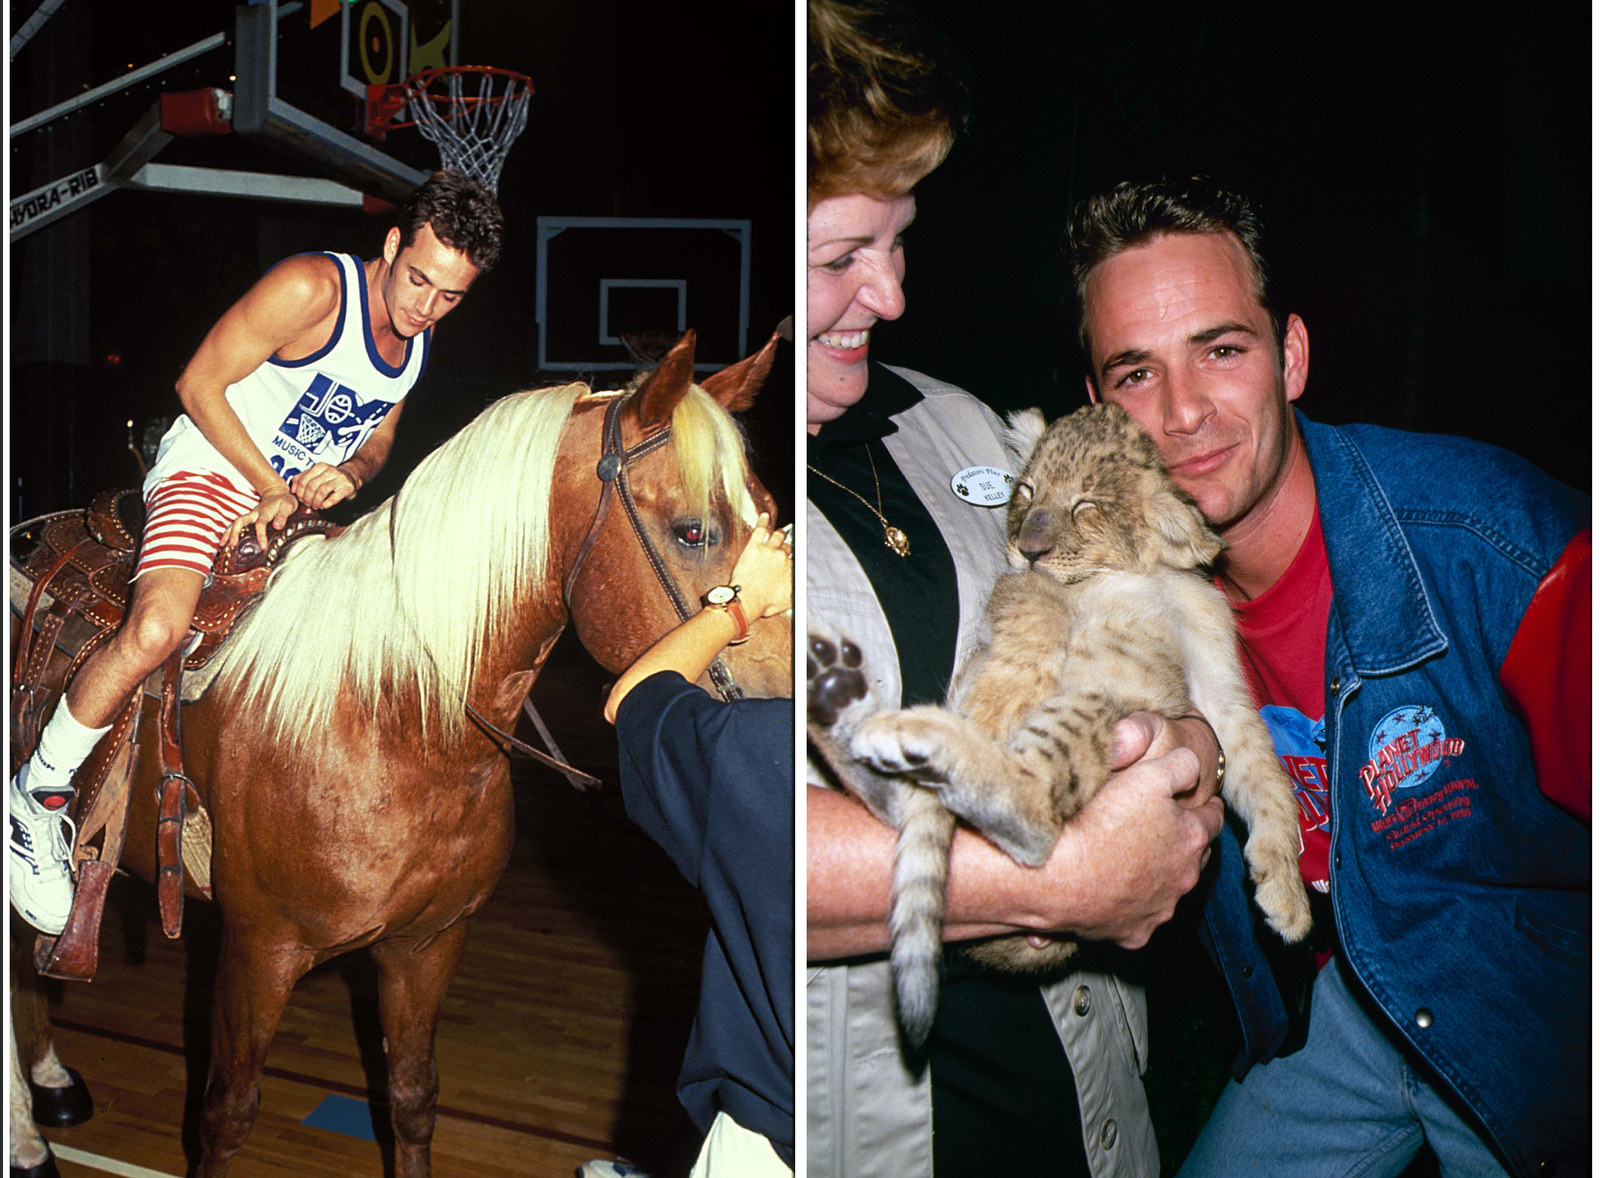 Luke Perry riding a horse at the 1991 MTV Rock 'n Jock Basketball game in Los Angeles. Right: Luke Perry at a charity event sponsored by Planet Hollywood in 1990.